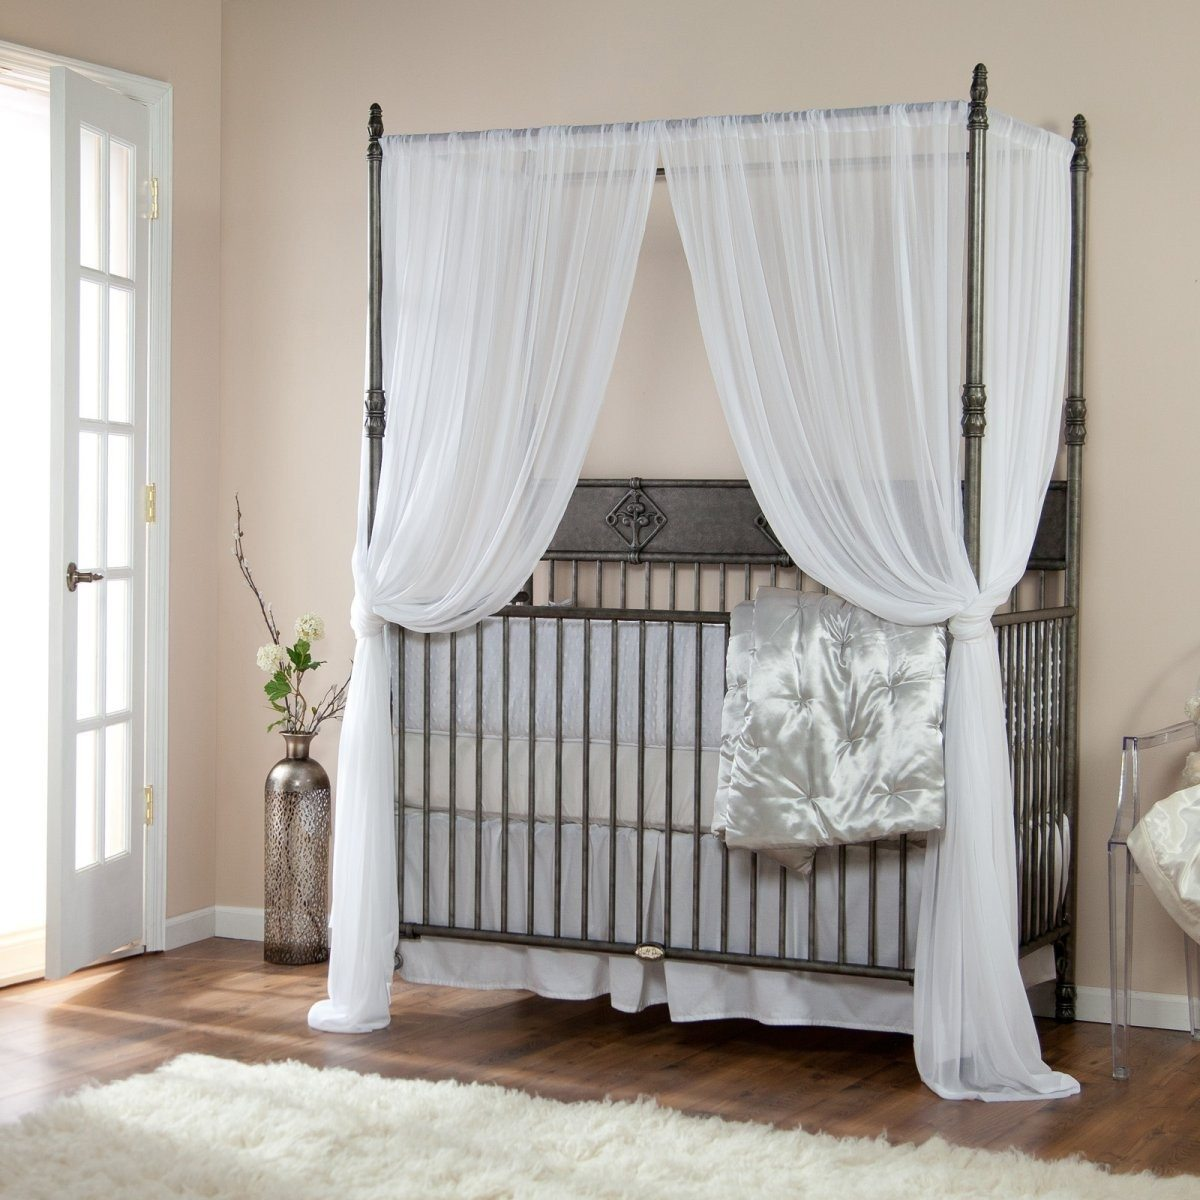 Best Nursery Collections with Restoration Hardware Cribs Design: Colette Crib | Natart Crib Reviews | Restoration Hardware Cribs